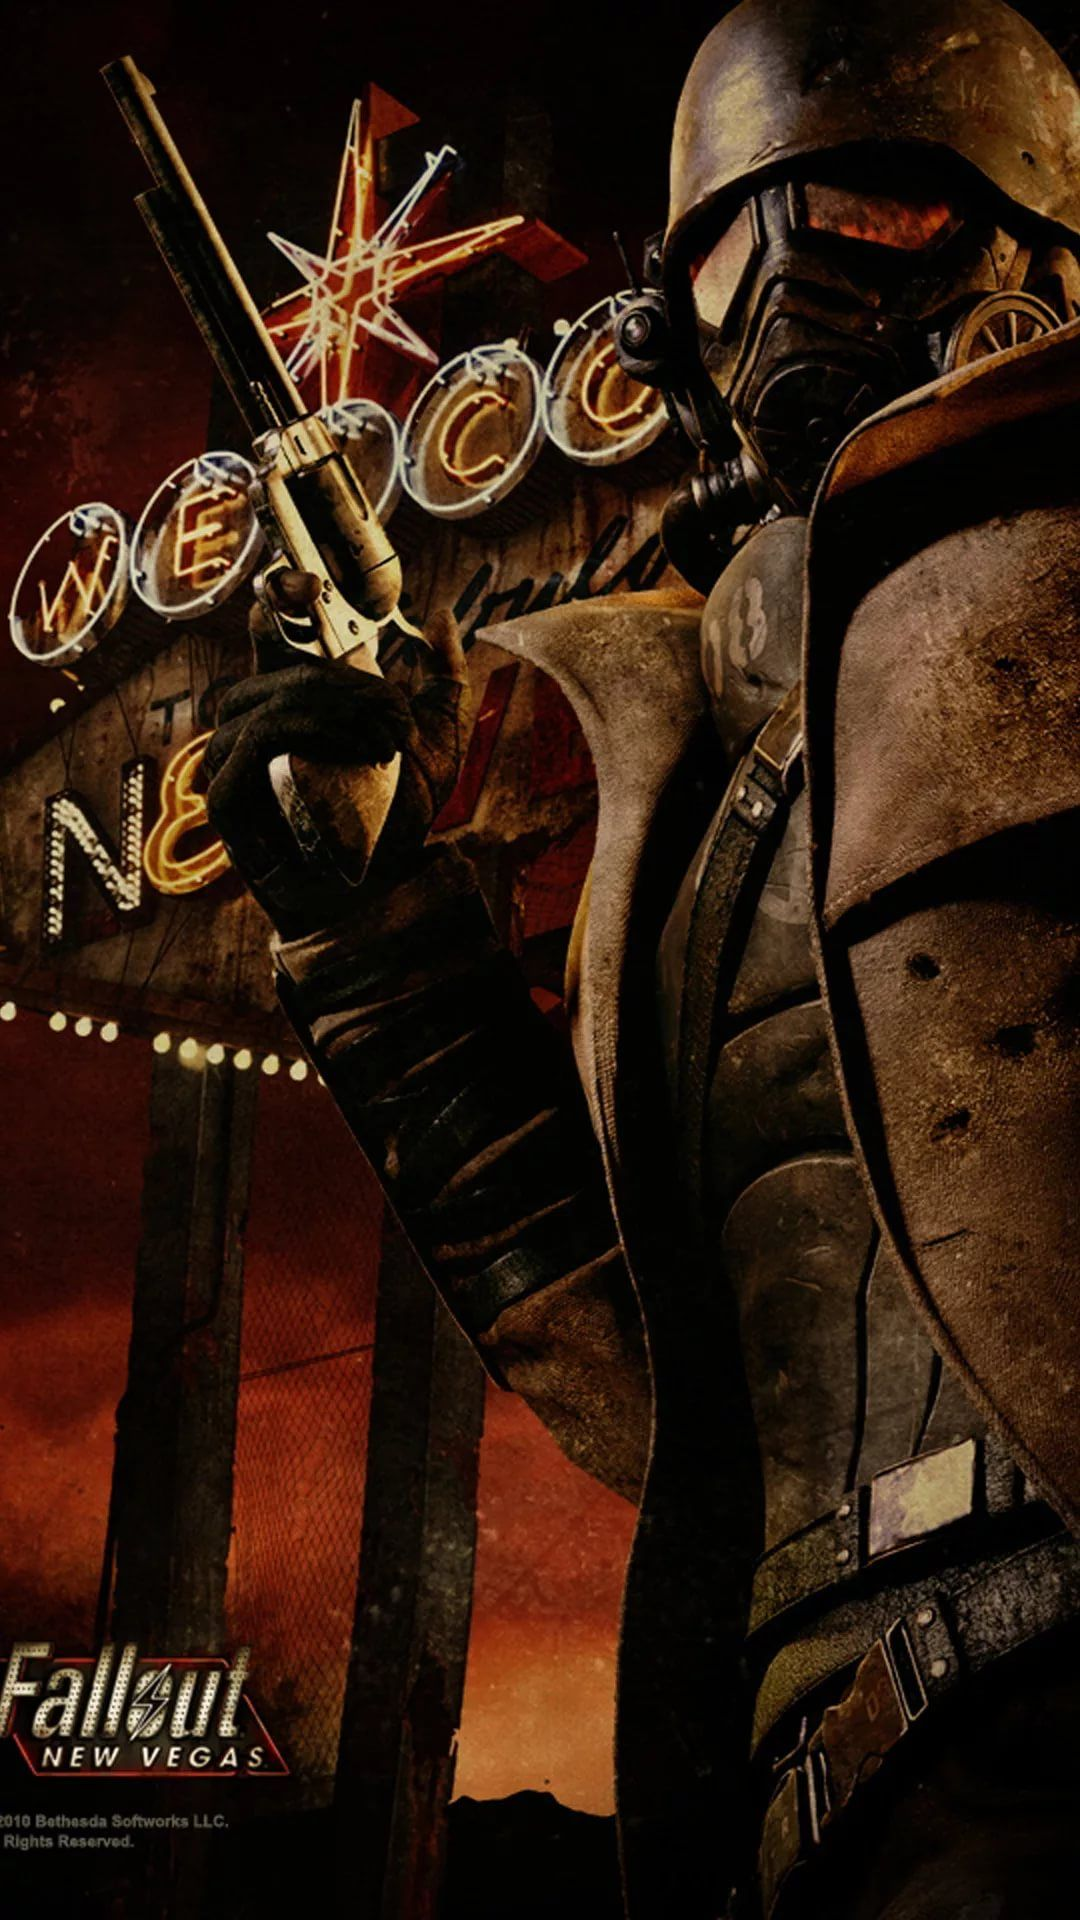 11 Fallout New Vegas Iphone Wallpapers Wallpaperboat